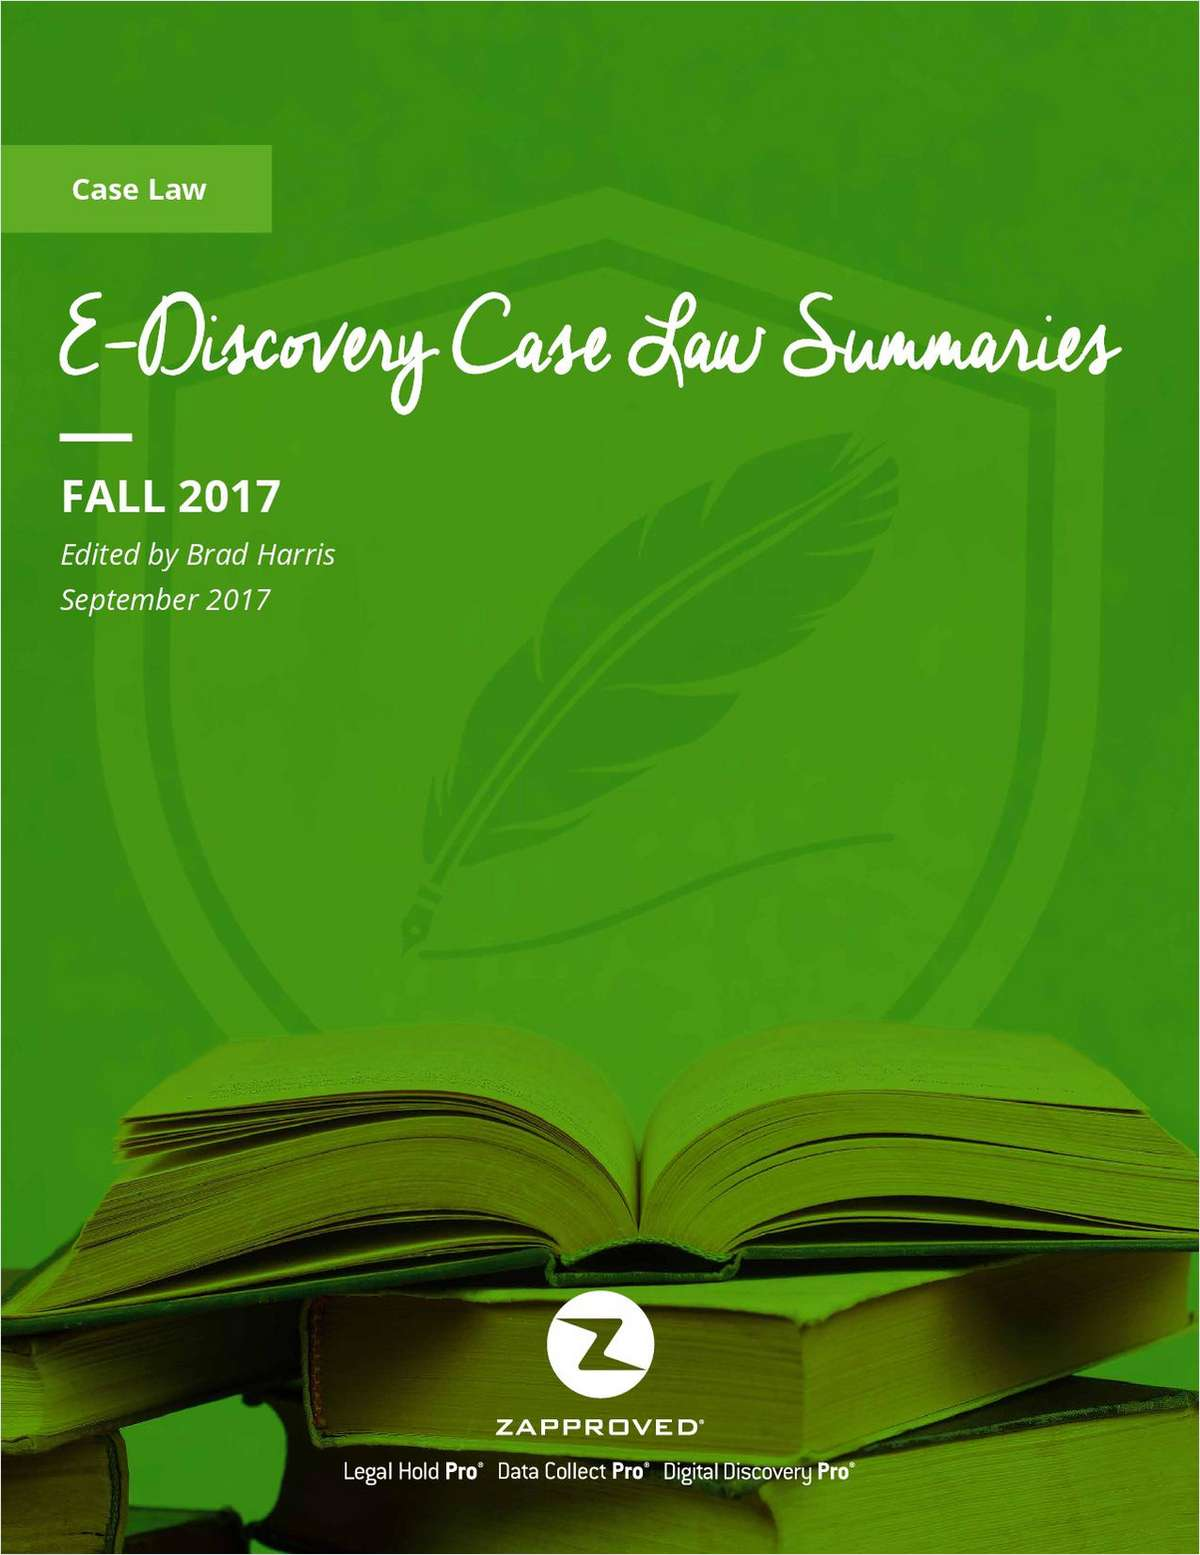 Fall 2017 E-Discovery Case Law Summaries